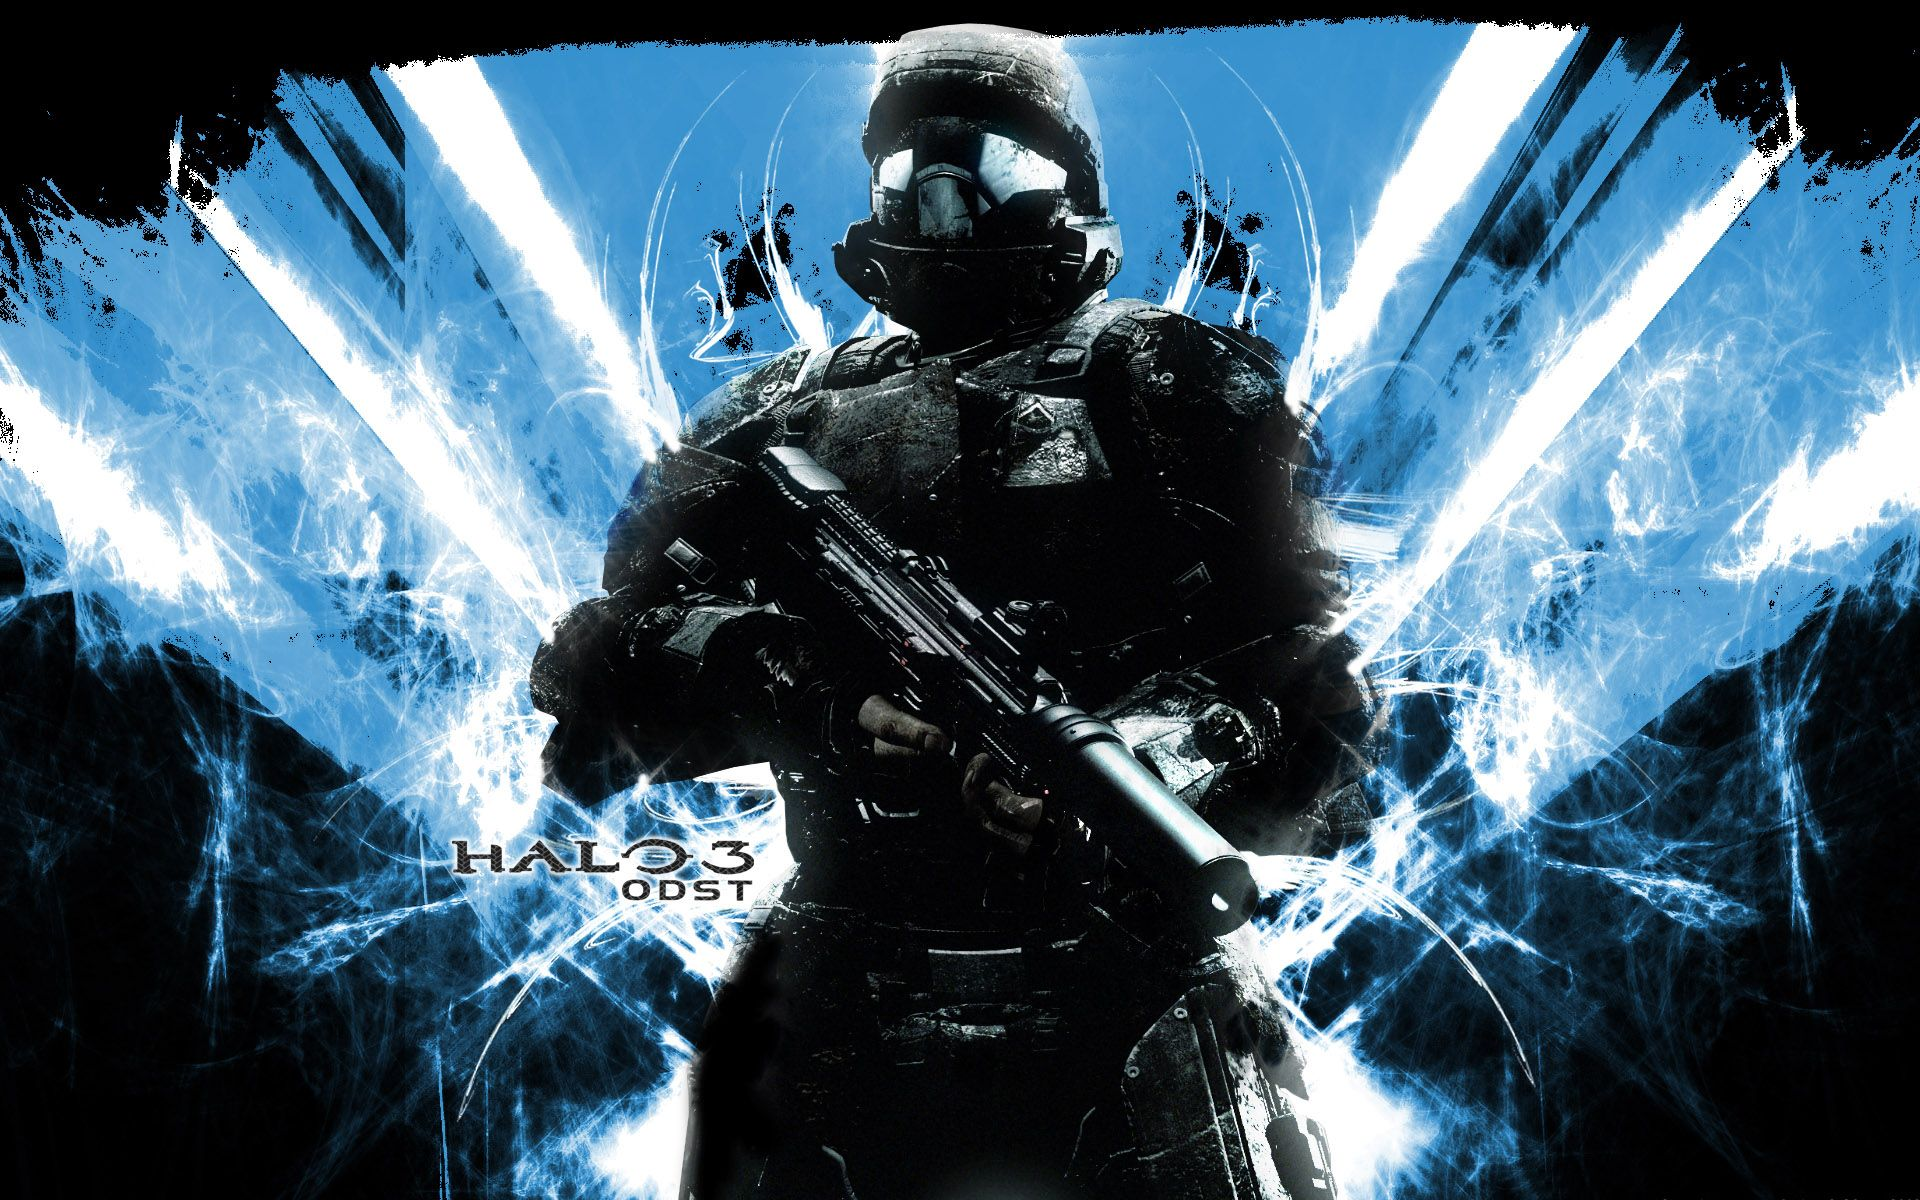 Halo 3 Odst Sticky Grenade Wallpaper Halo Games Wallpapers Res